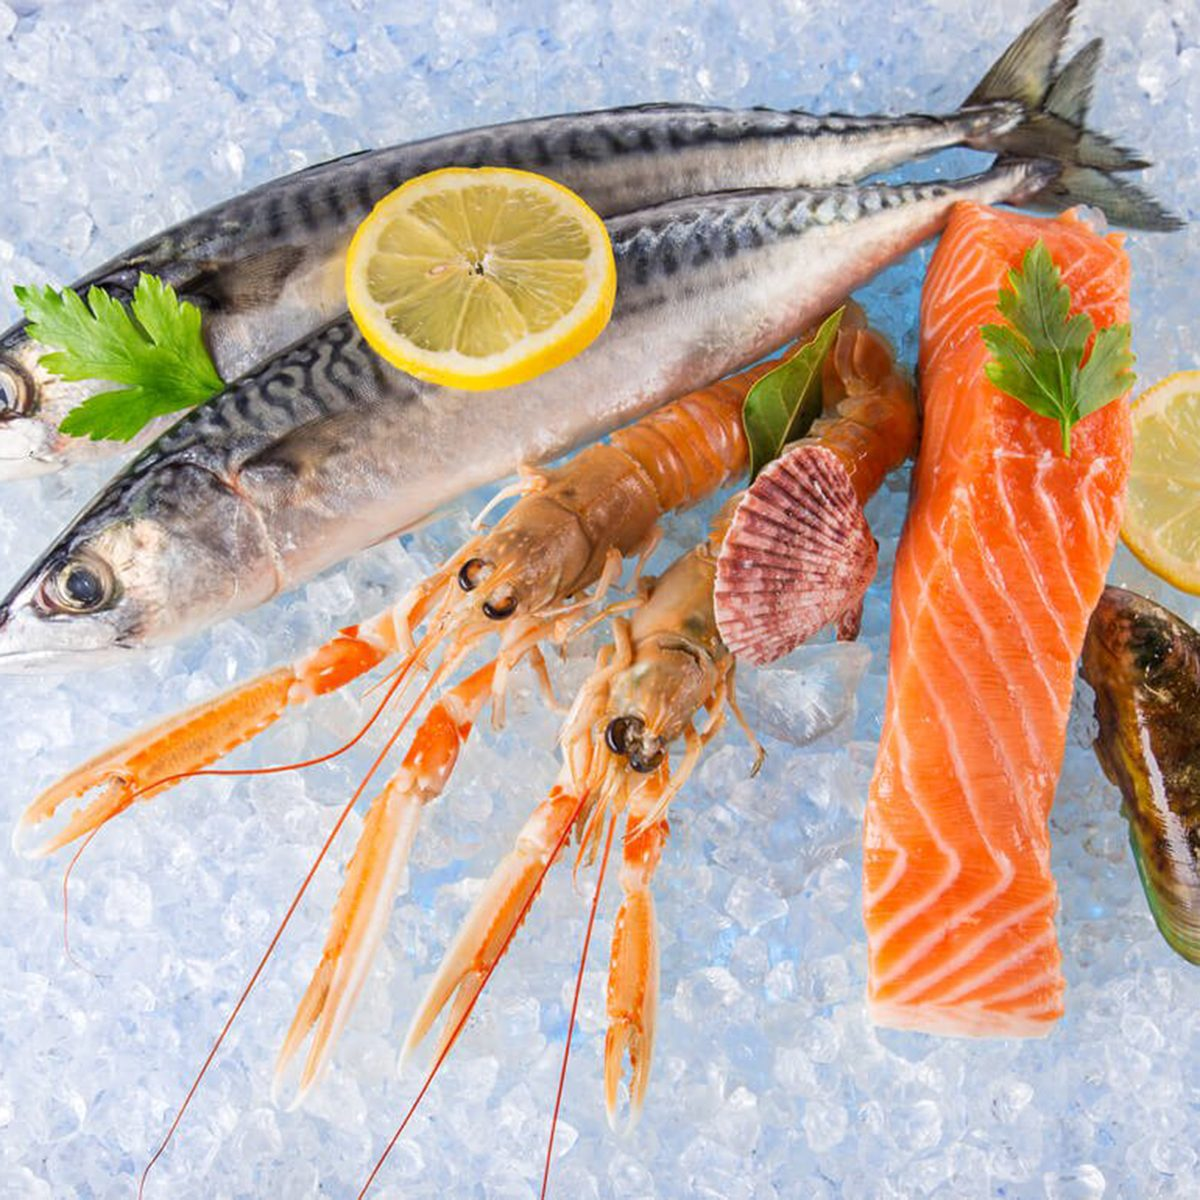 Fish and shrimp on ice